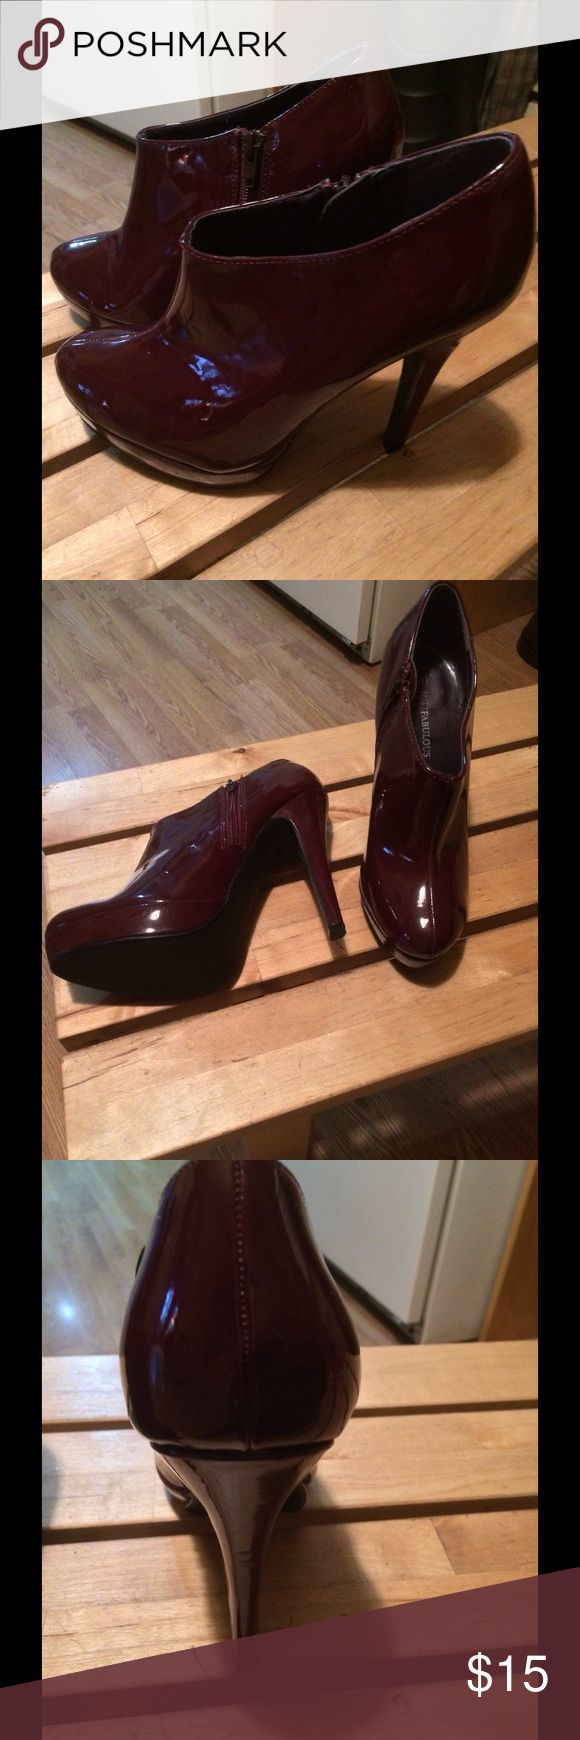 """Patent Leather Eggplant Purple Ankle Heeled Bootie Definitely a head turner. Patent leather & eggplant in color, these heeled, ankle booties can be dressed up or down & still look amazing. Unique yet simple. Worn once briefly & like new. Size 10 & approximately 3.25"""" in height. Shoes Ankle Boots & Booties"""